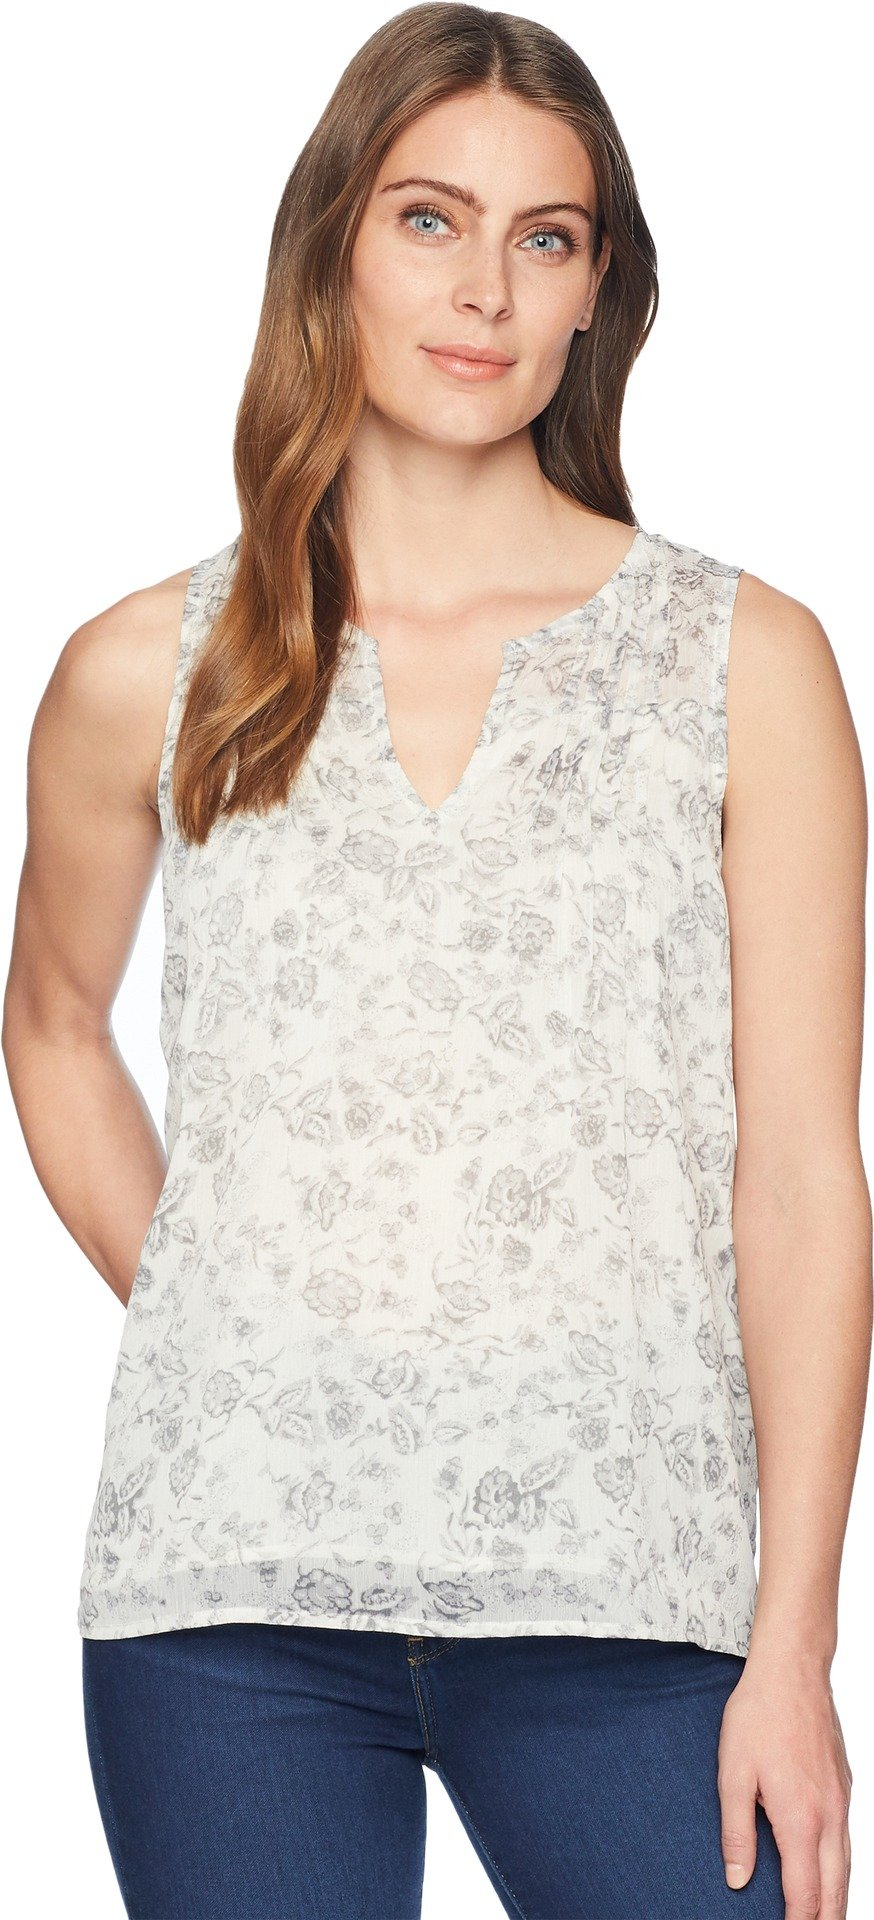 Lucky Brand Women's Floral Printed Tank Top, Grey/Multi, L